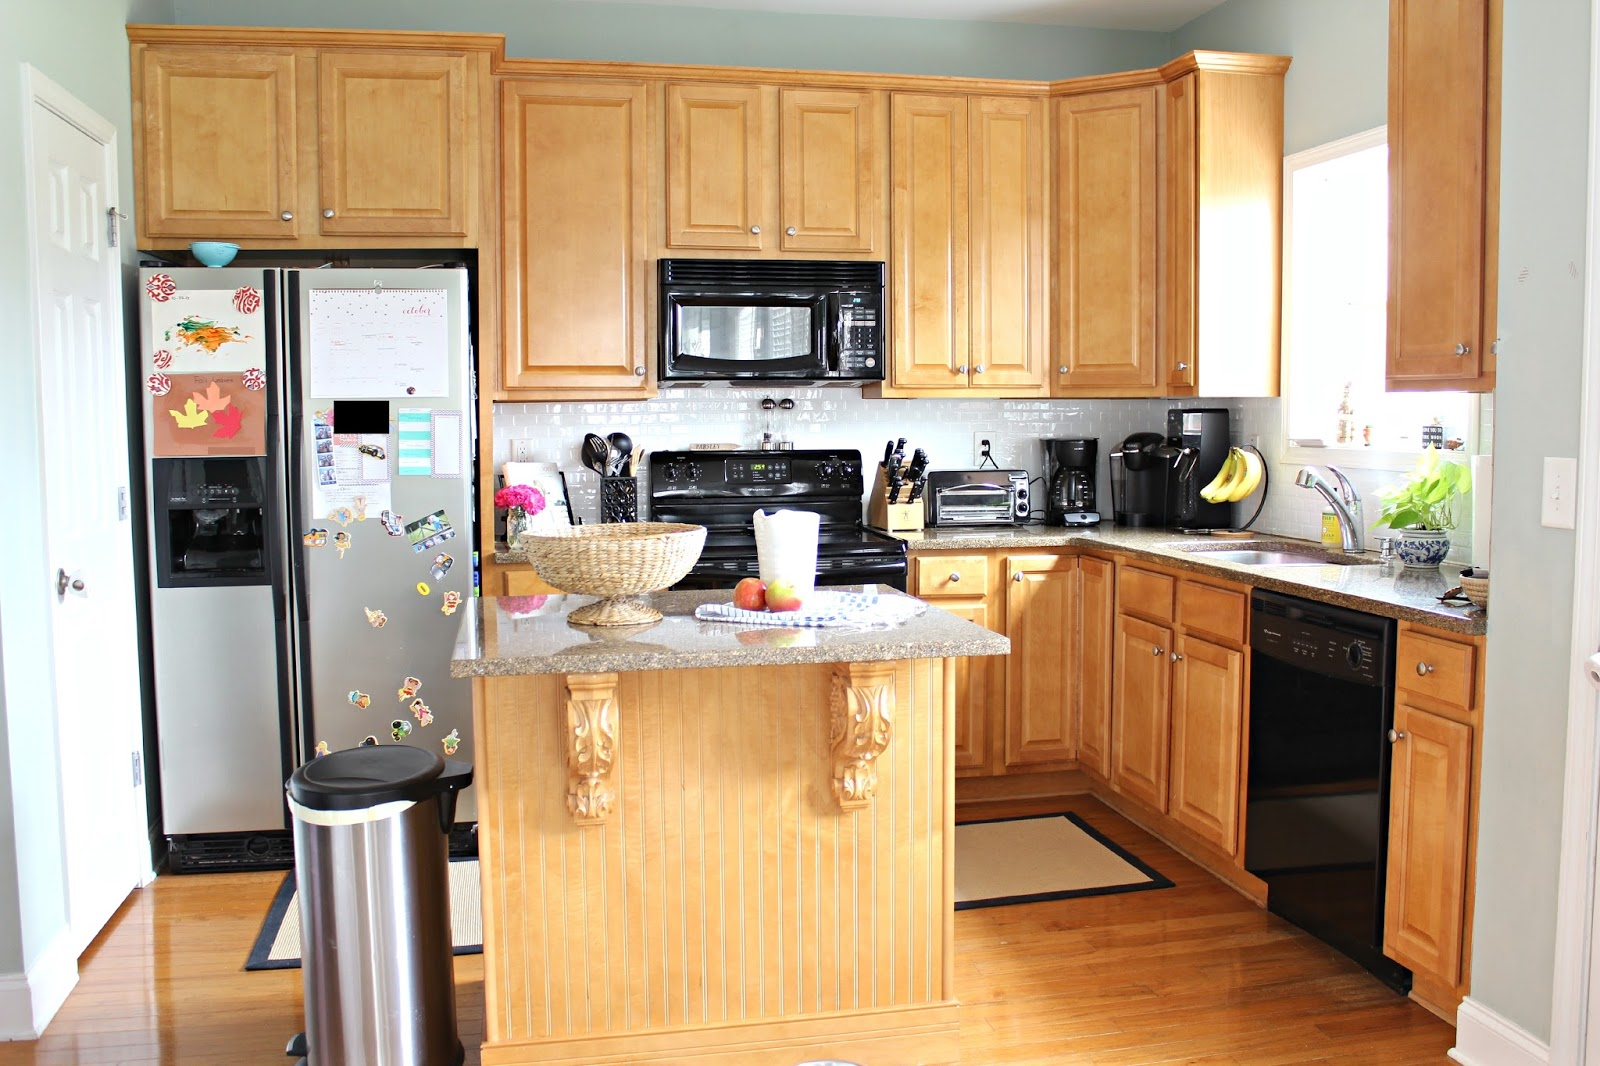 How To Update A Al Kitchen With L Stick Tile